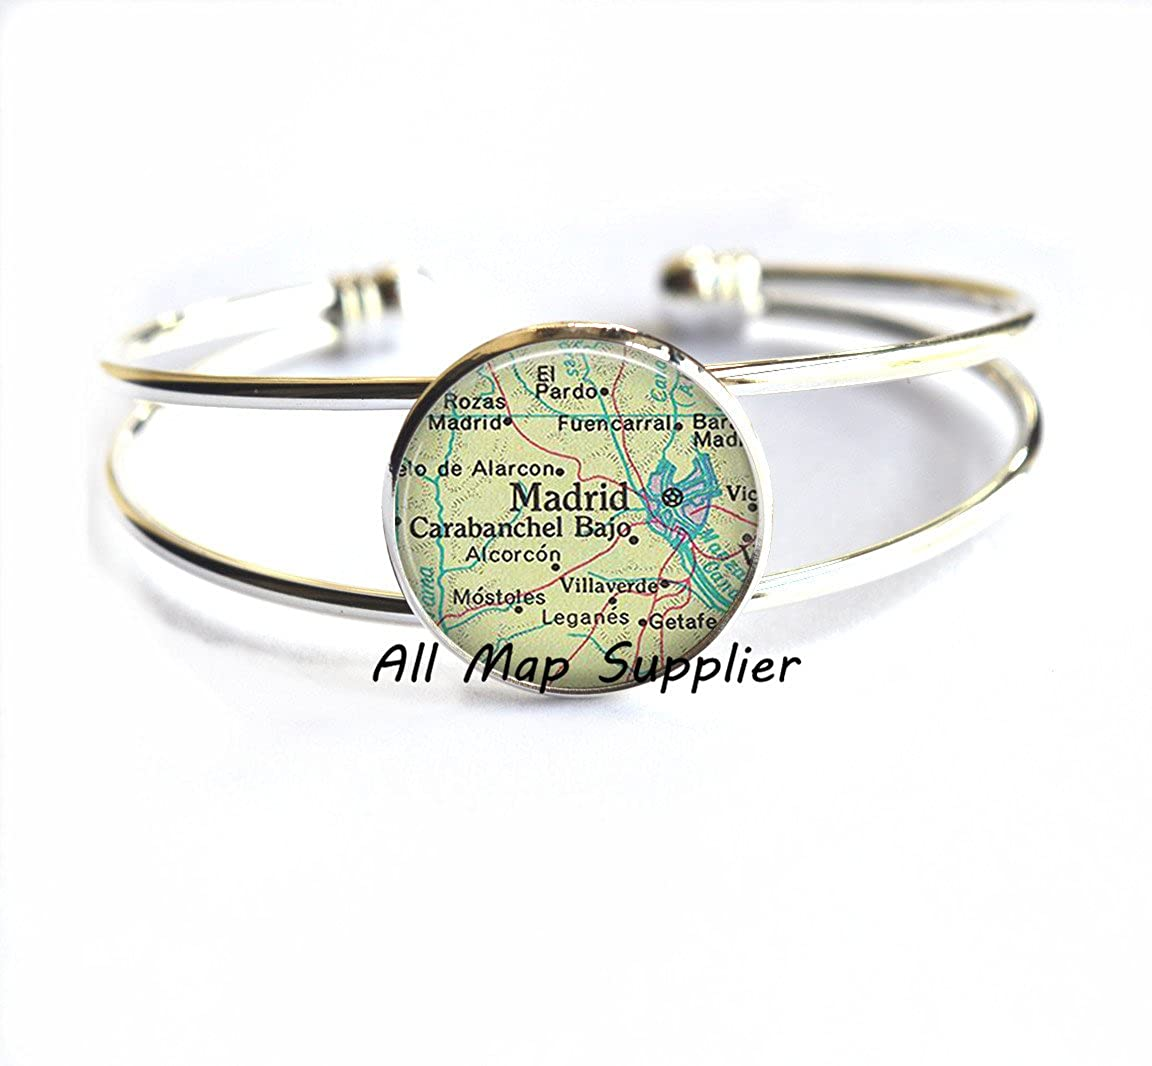 Madrid Bracelets Madrid map Bracelets map jewelry,AO155 Madrid Spain Bracelets Charming Bracelet,Madrid map Bracelet Madrid Bracelet